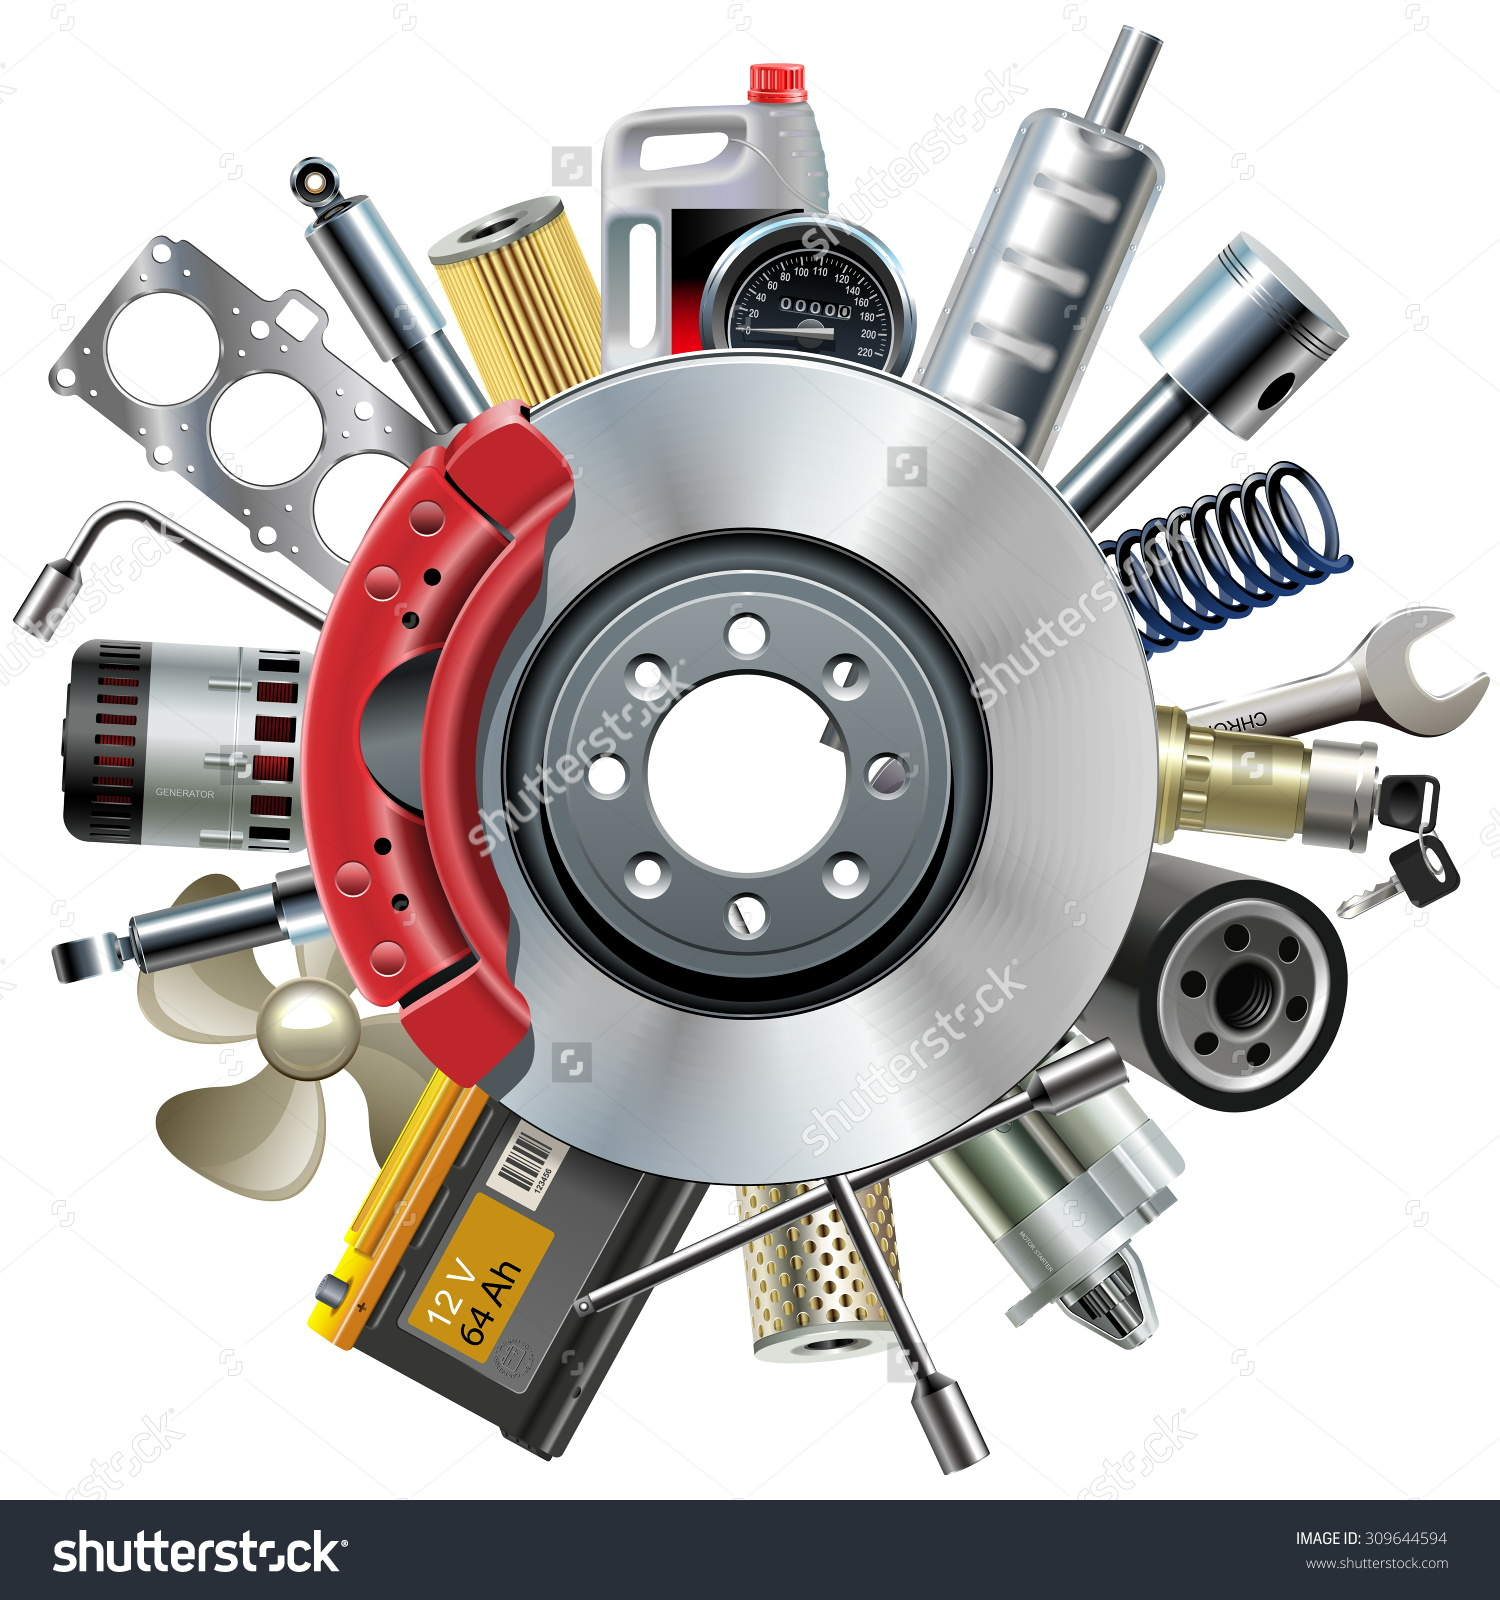 Vector Car Spares Concept Disk Brake Stock Vector 309644594.